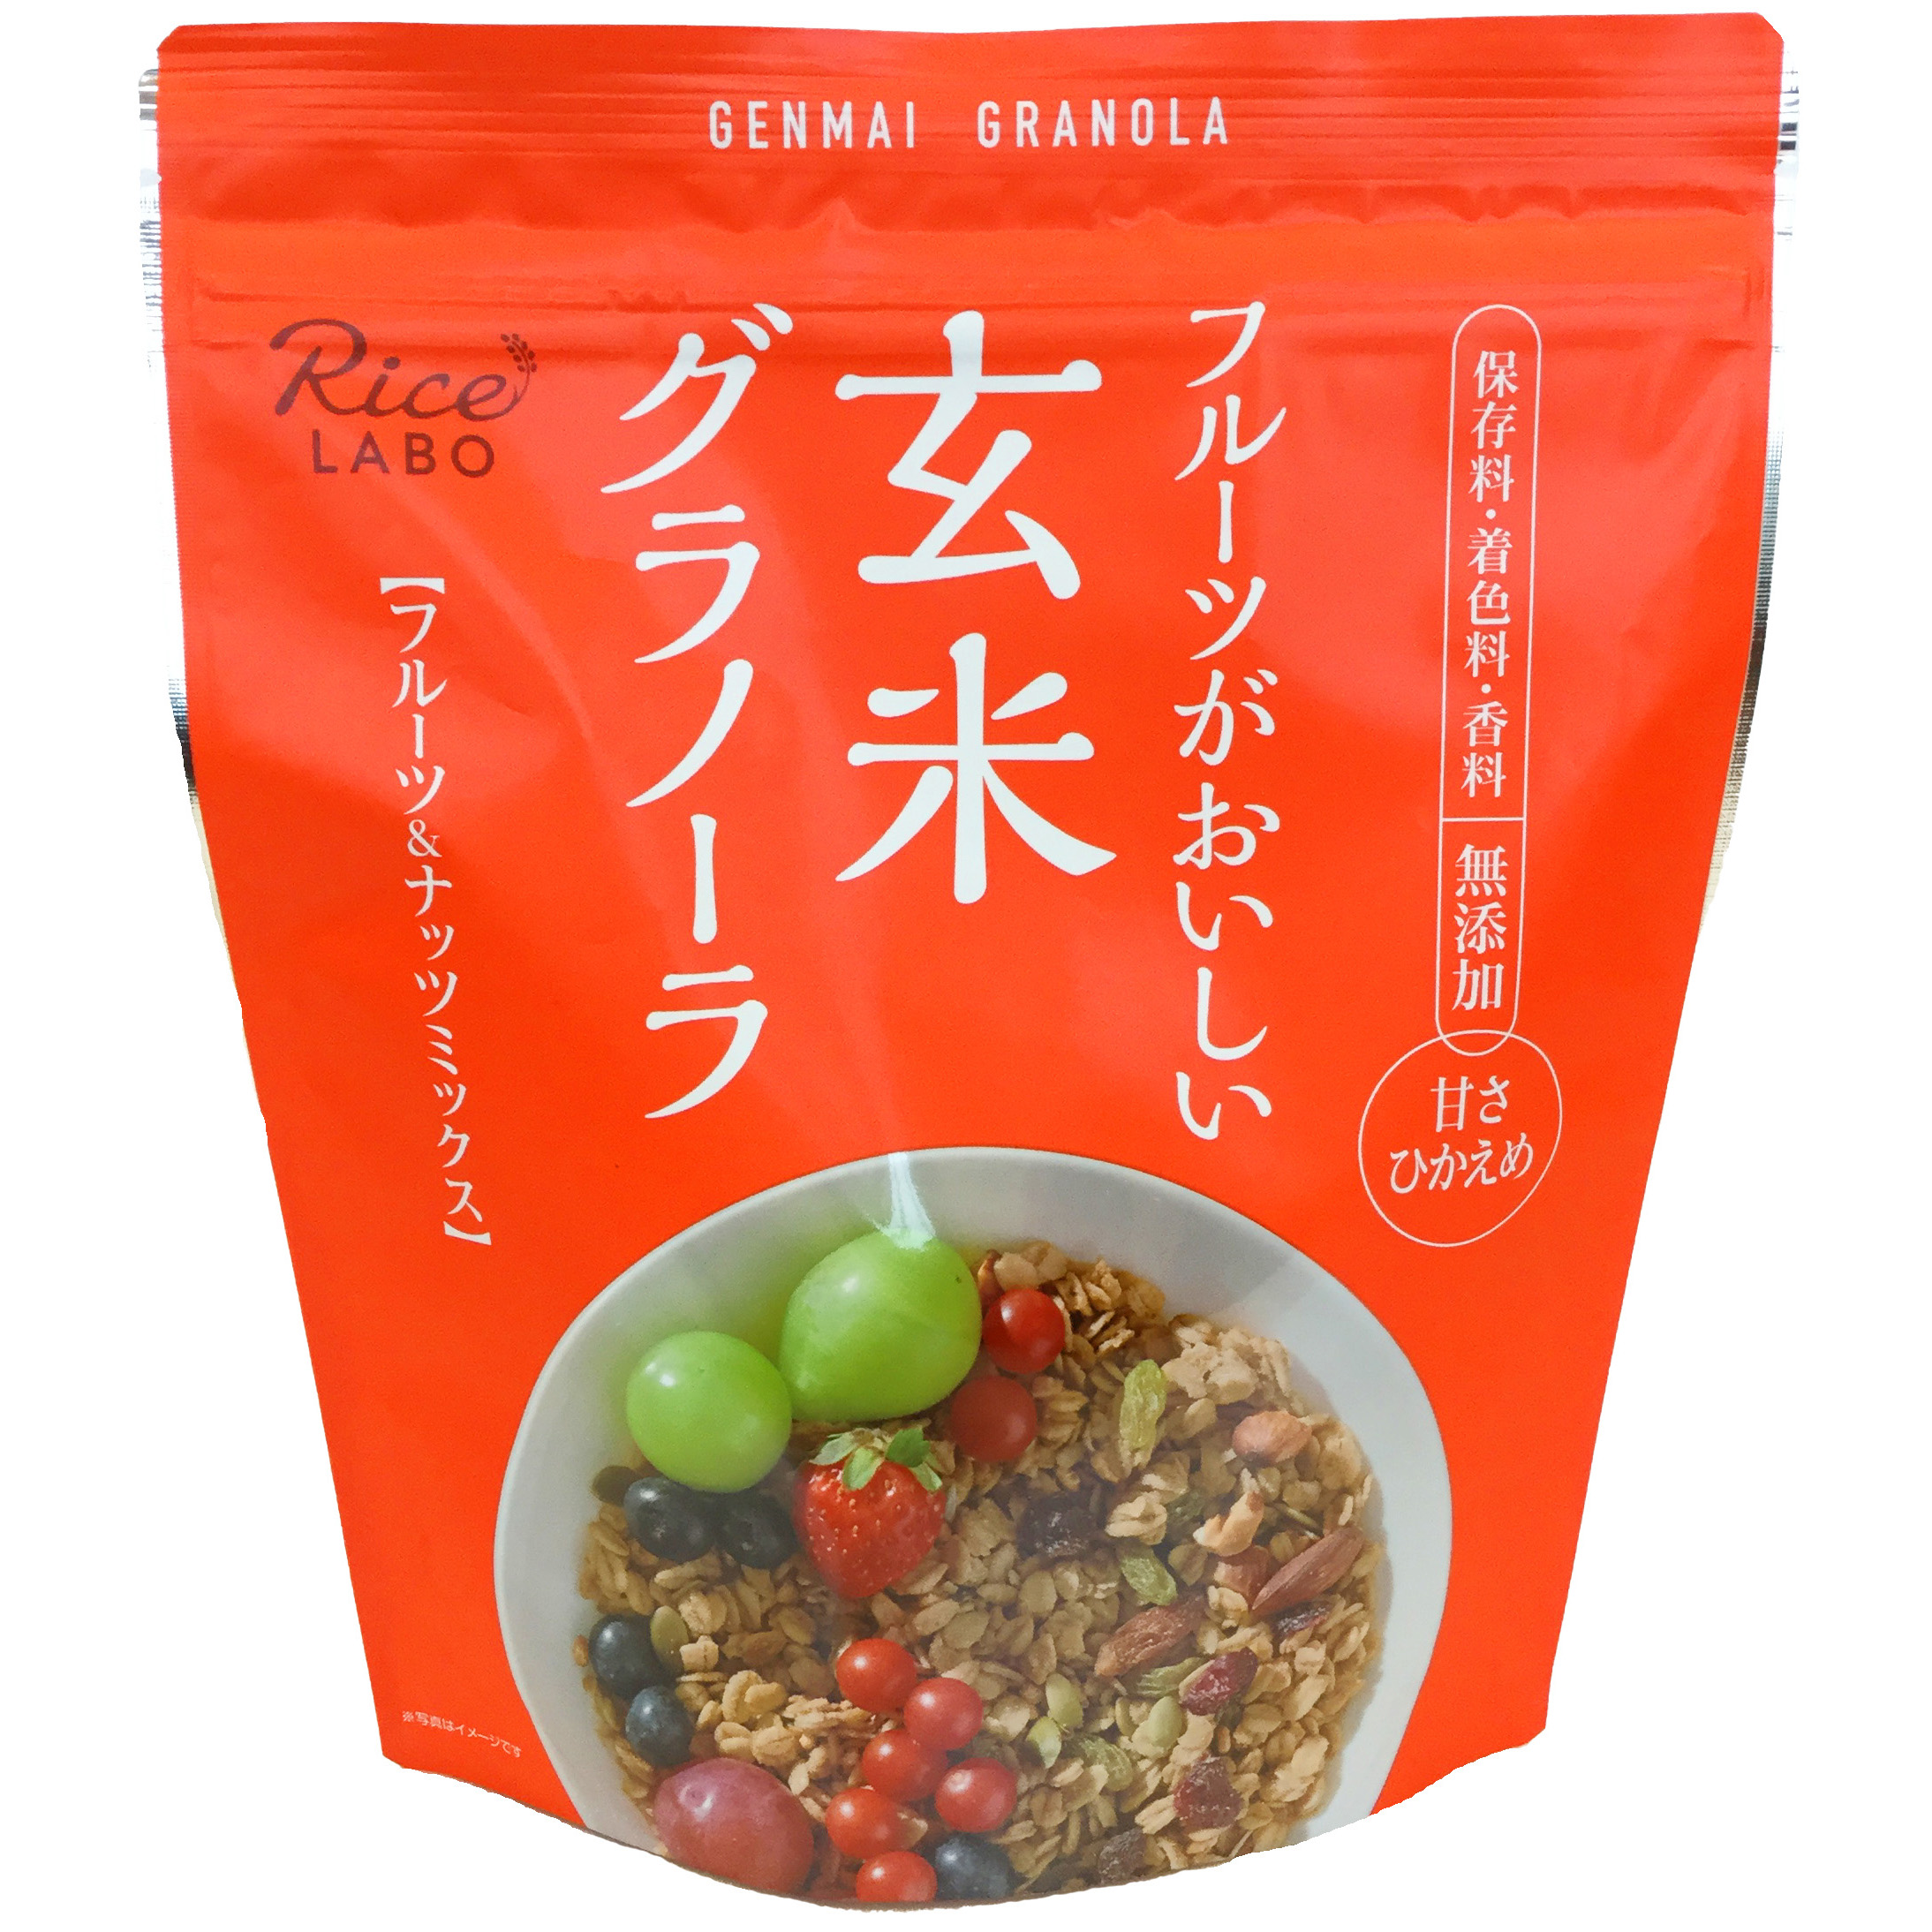 Healthy delicious instant oatmeal breakfast cereal made in japan